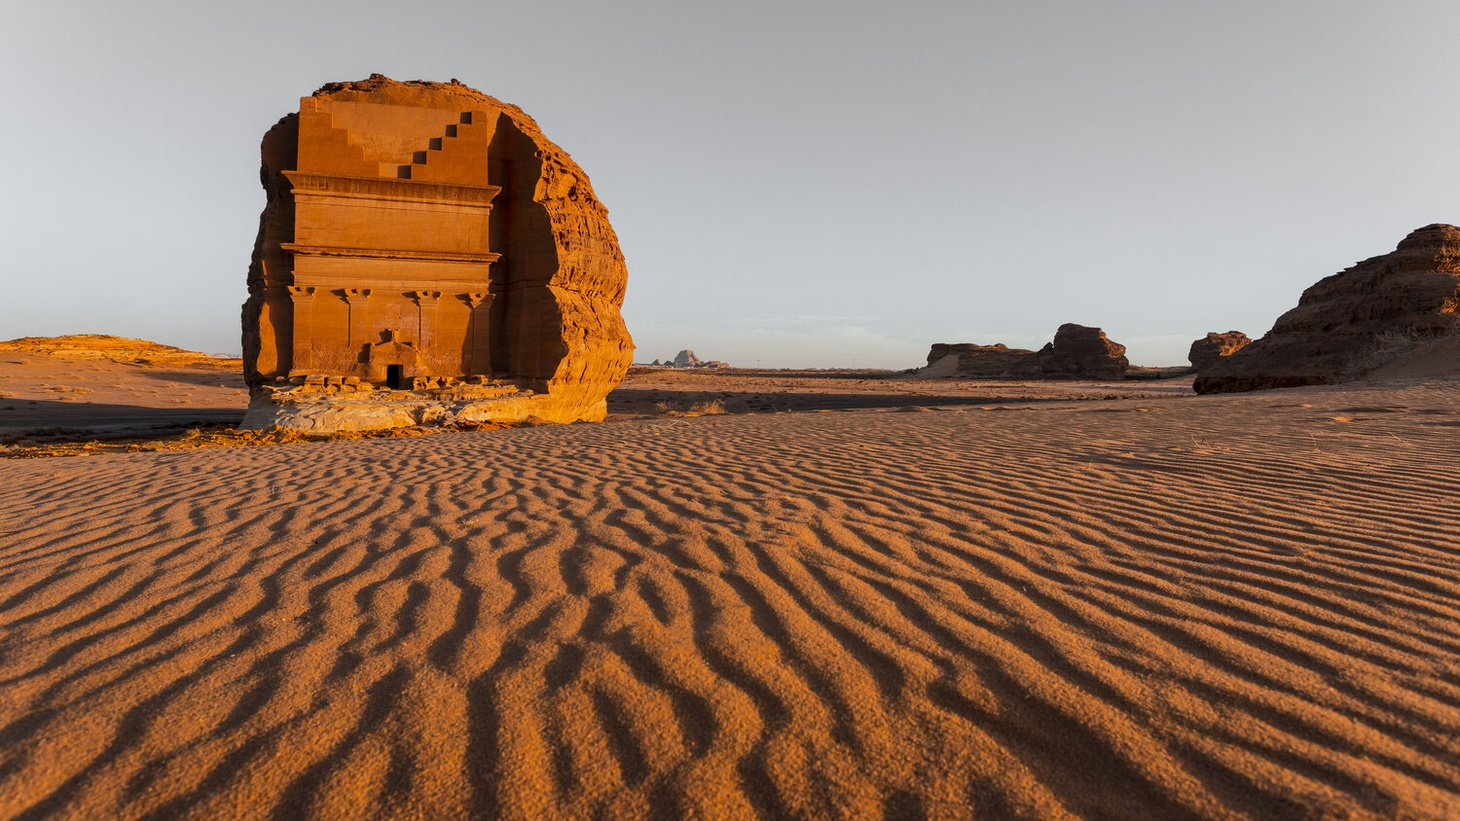 Qaṣr Al-Farīd, an archaeological site located in AlUla in Saudi Arabia, where Desert X is set to take place next year.